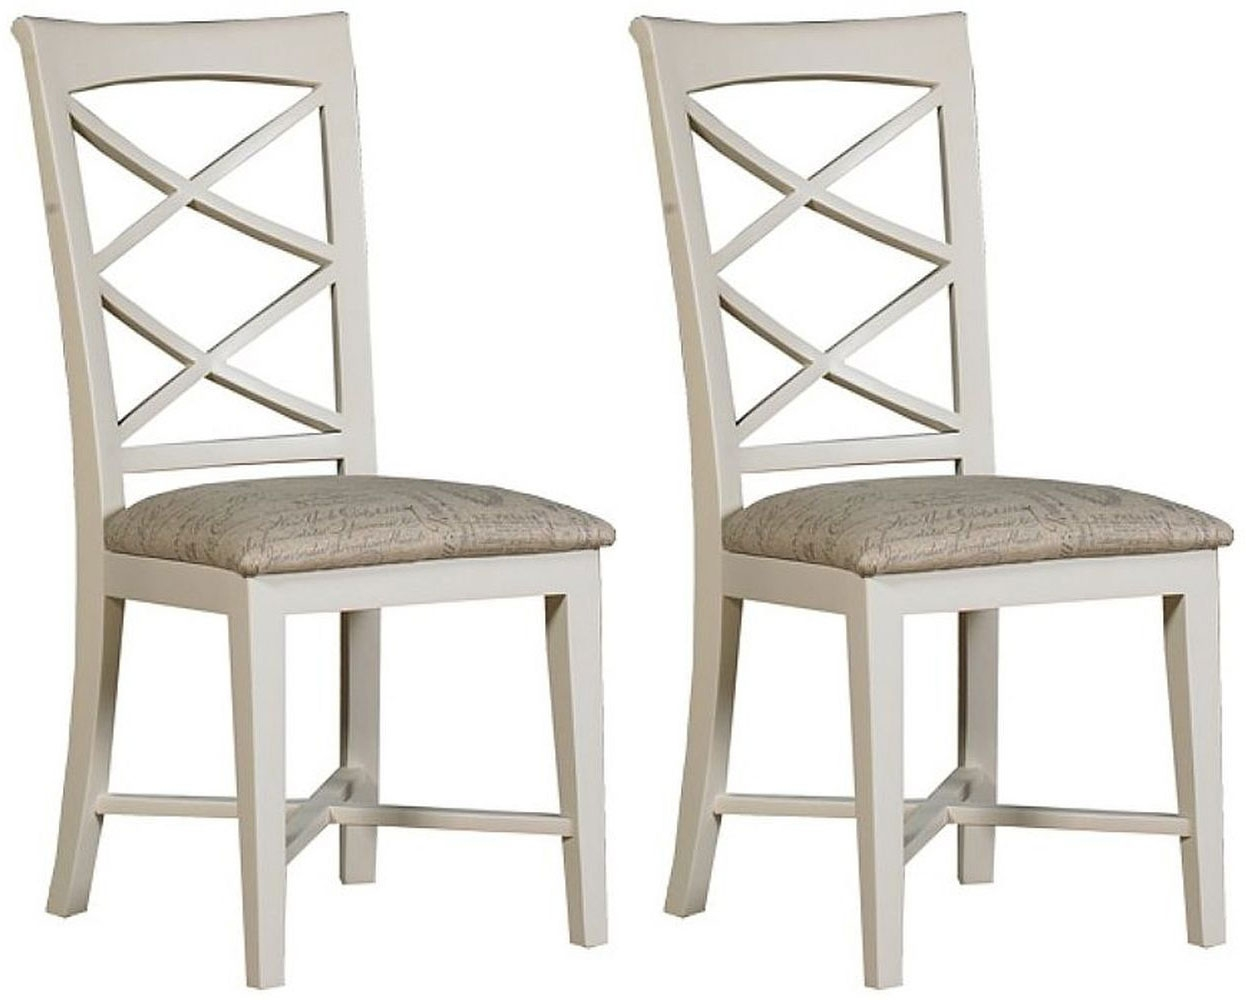 Mark Webster Padstow Painted Cross Back Dining Chair with Fabric Seat Pad (Pair)